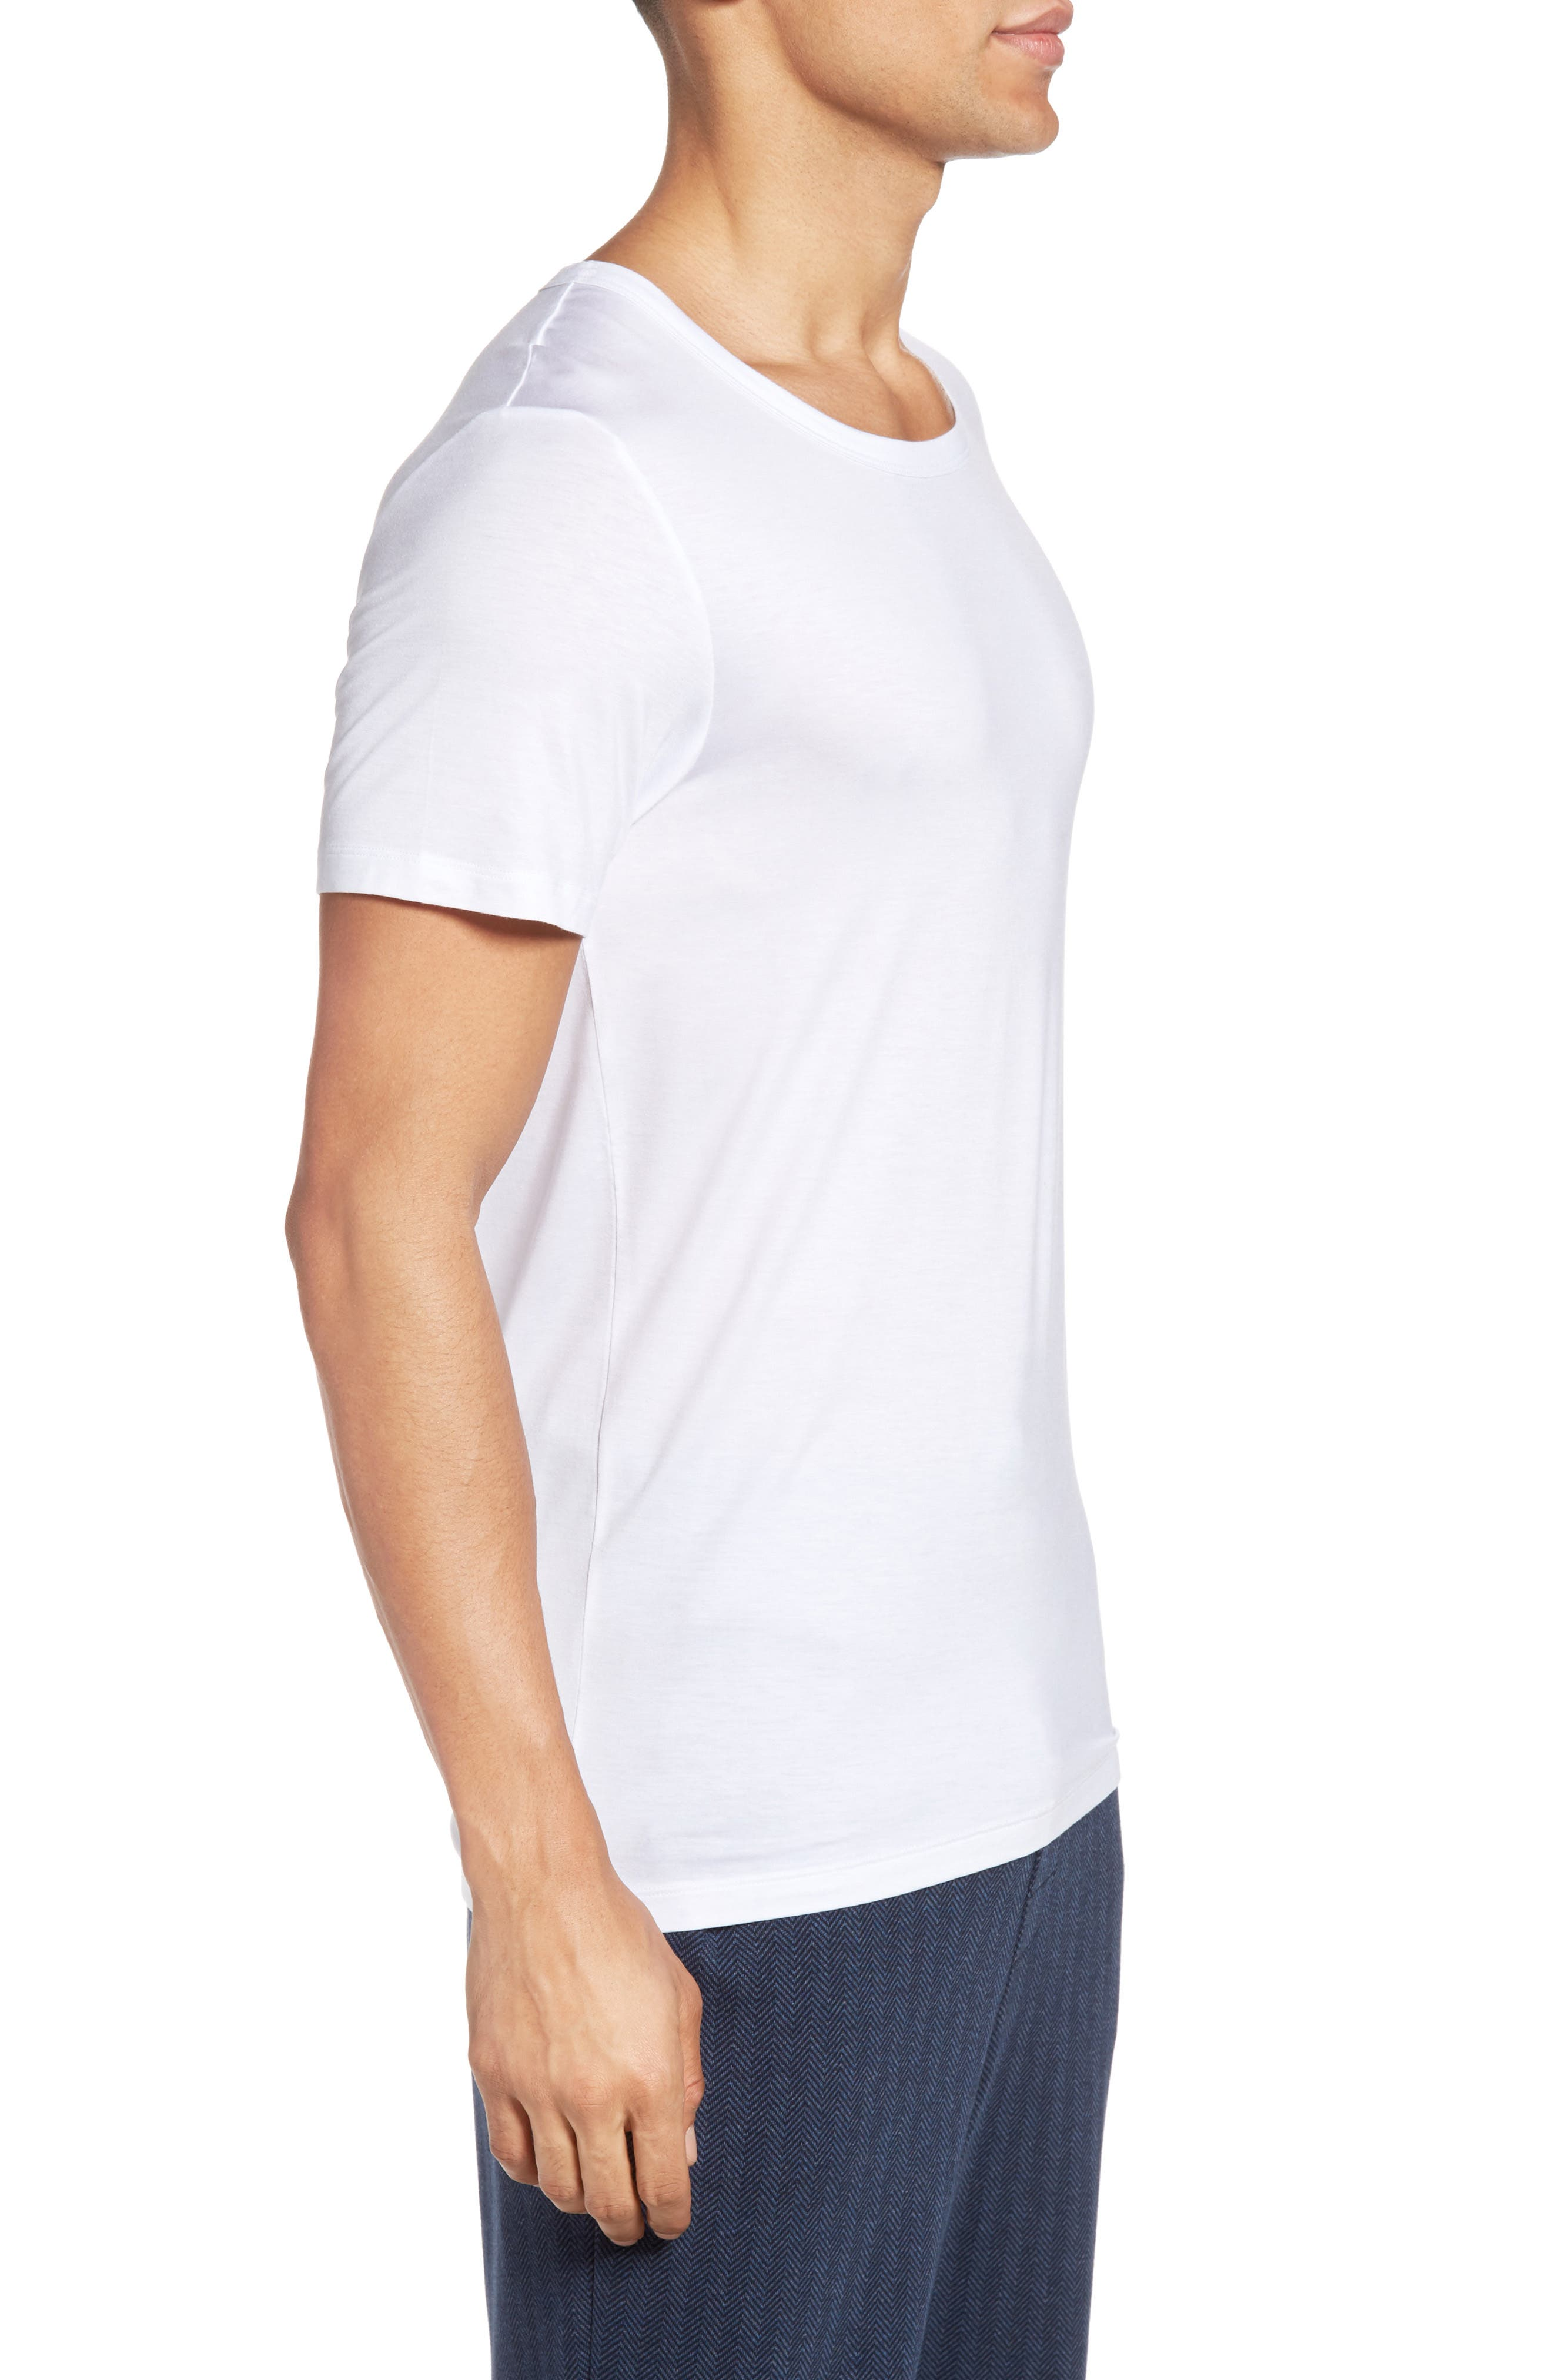 SeaCell<sup>®</sup> Blend T-Shirt,                             Alternate thumbnail 3, color,                             White